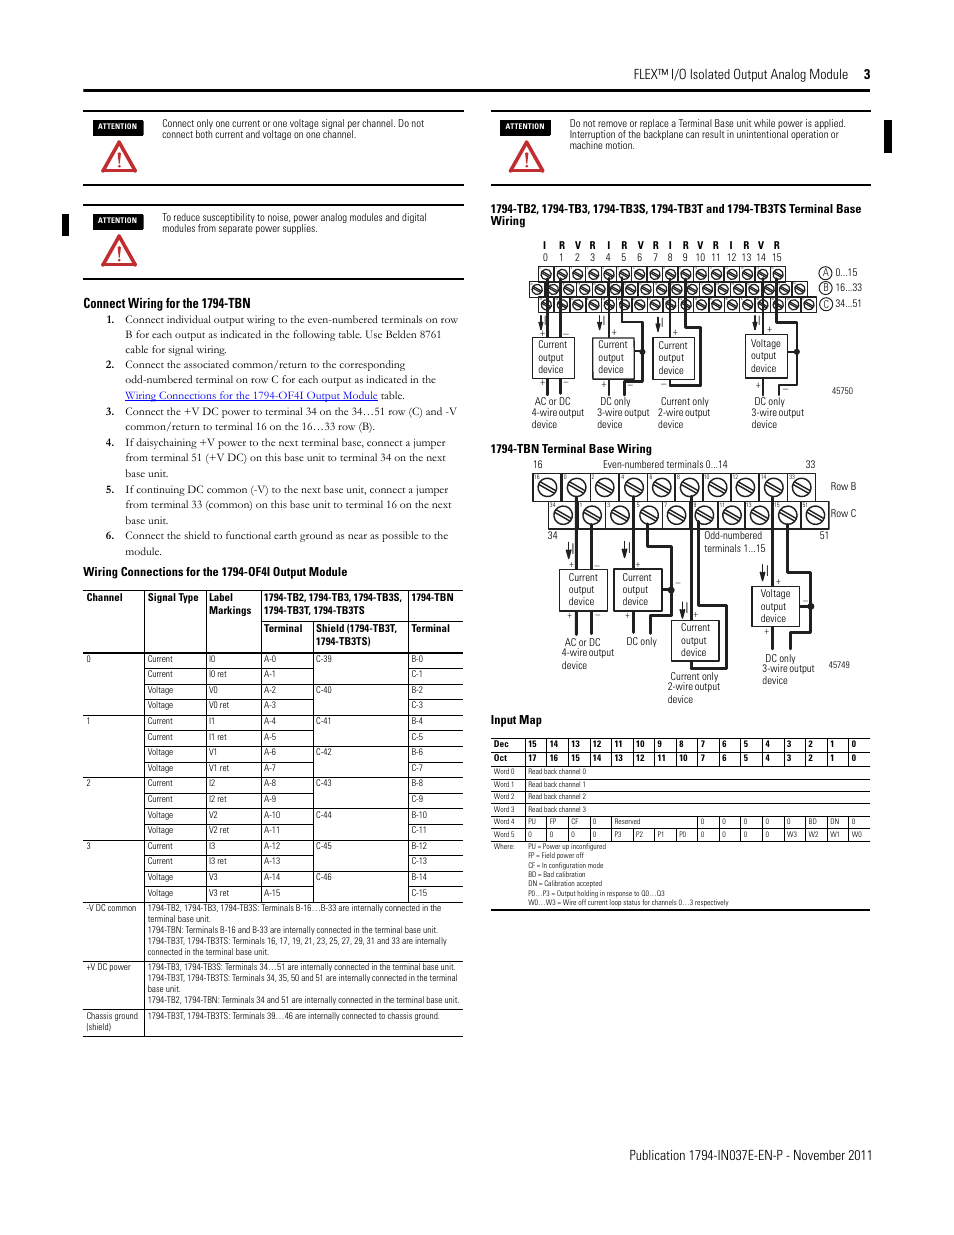 connect wiring for the 1794 tbn input map rockwell automation rh manualsdir com allen-bradley 1794-if4i user manual 1794-if4i user manual